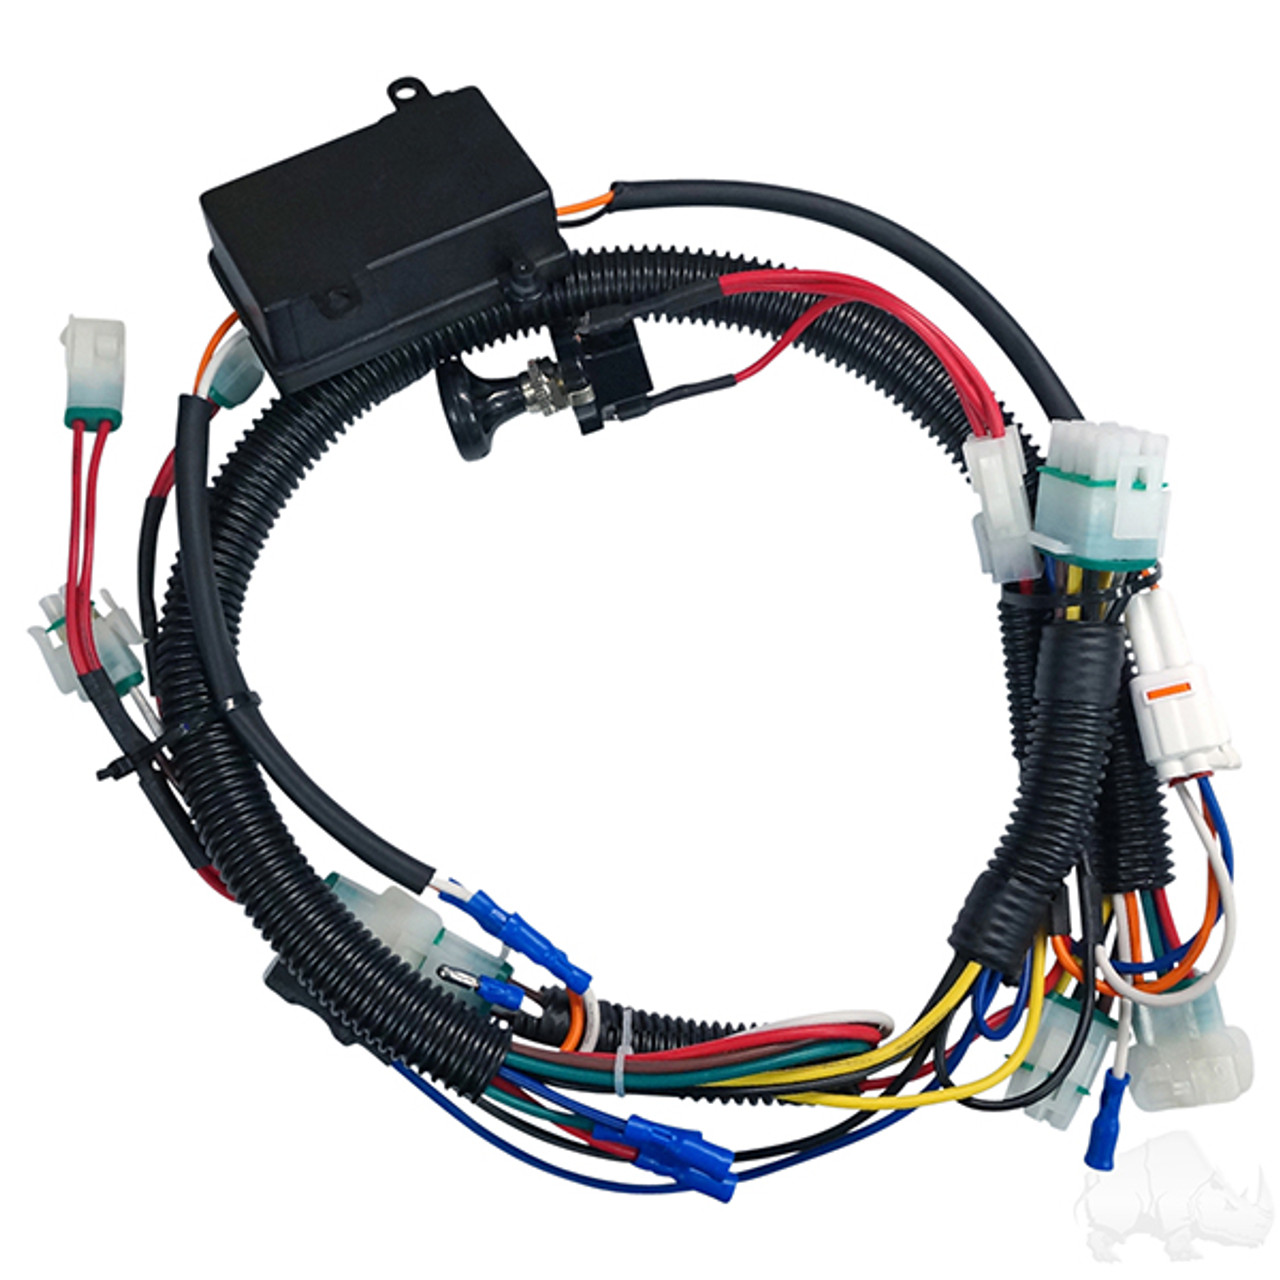 LGT-340LB Plug and Play wiring harness for upgrading to Deluxe Light Kits